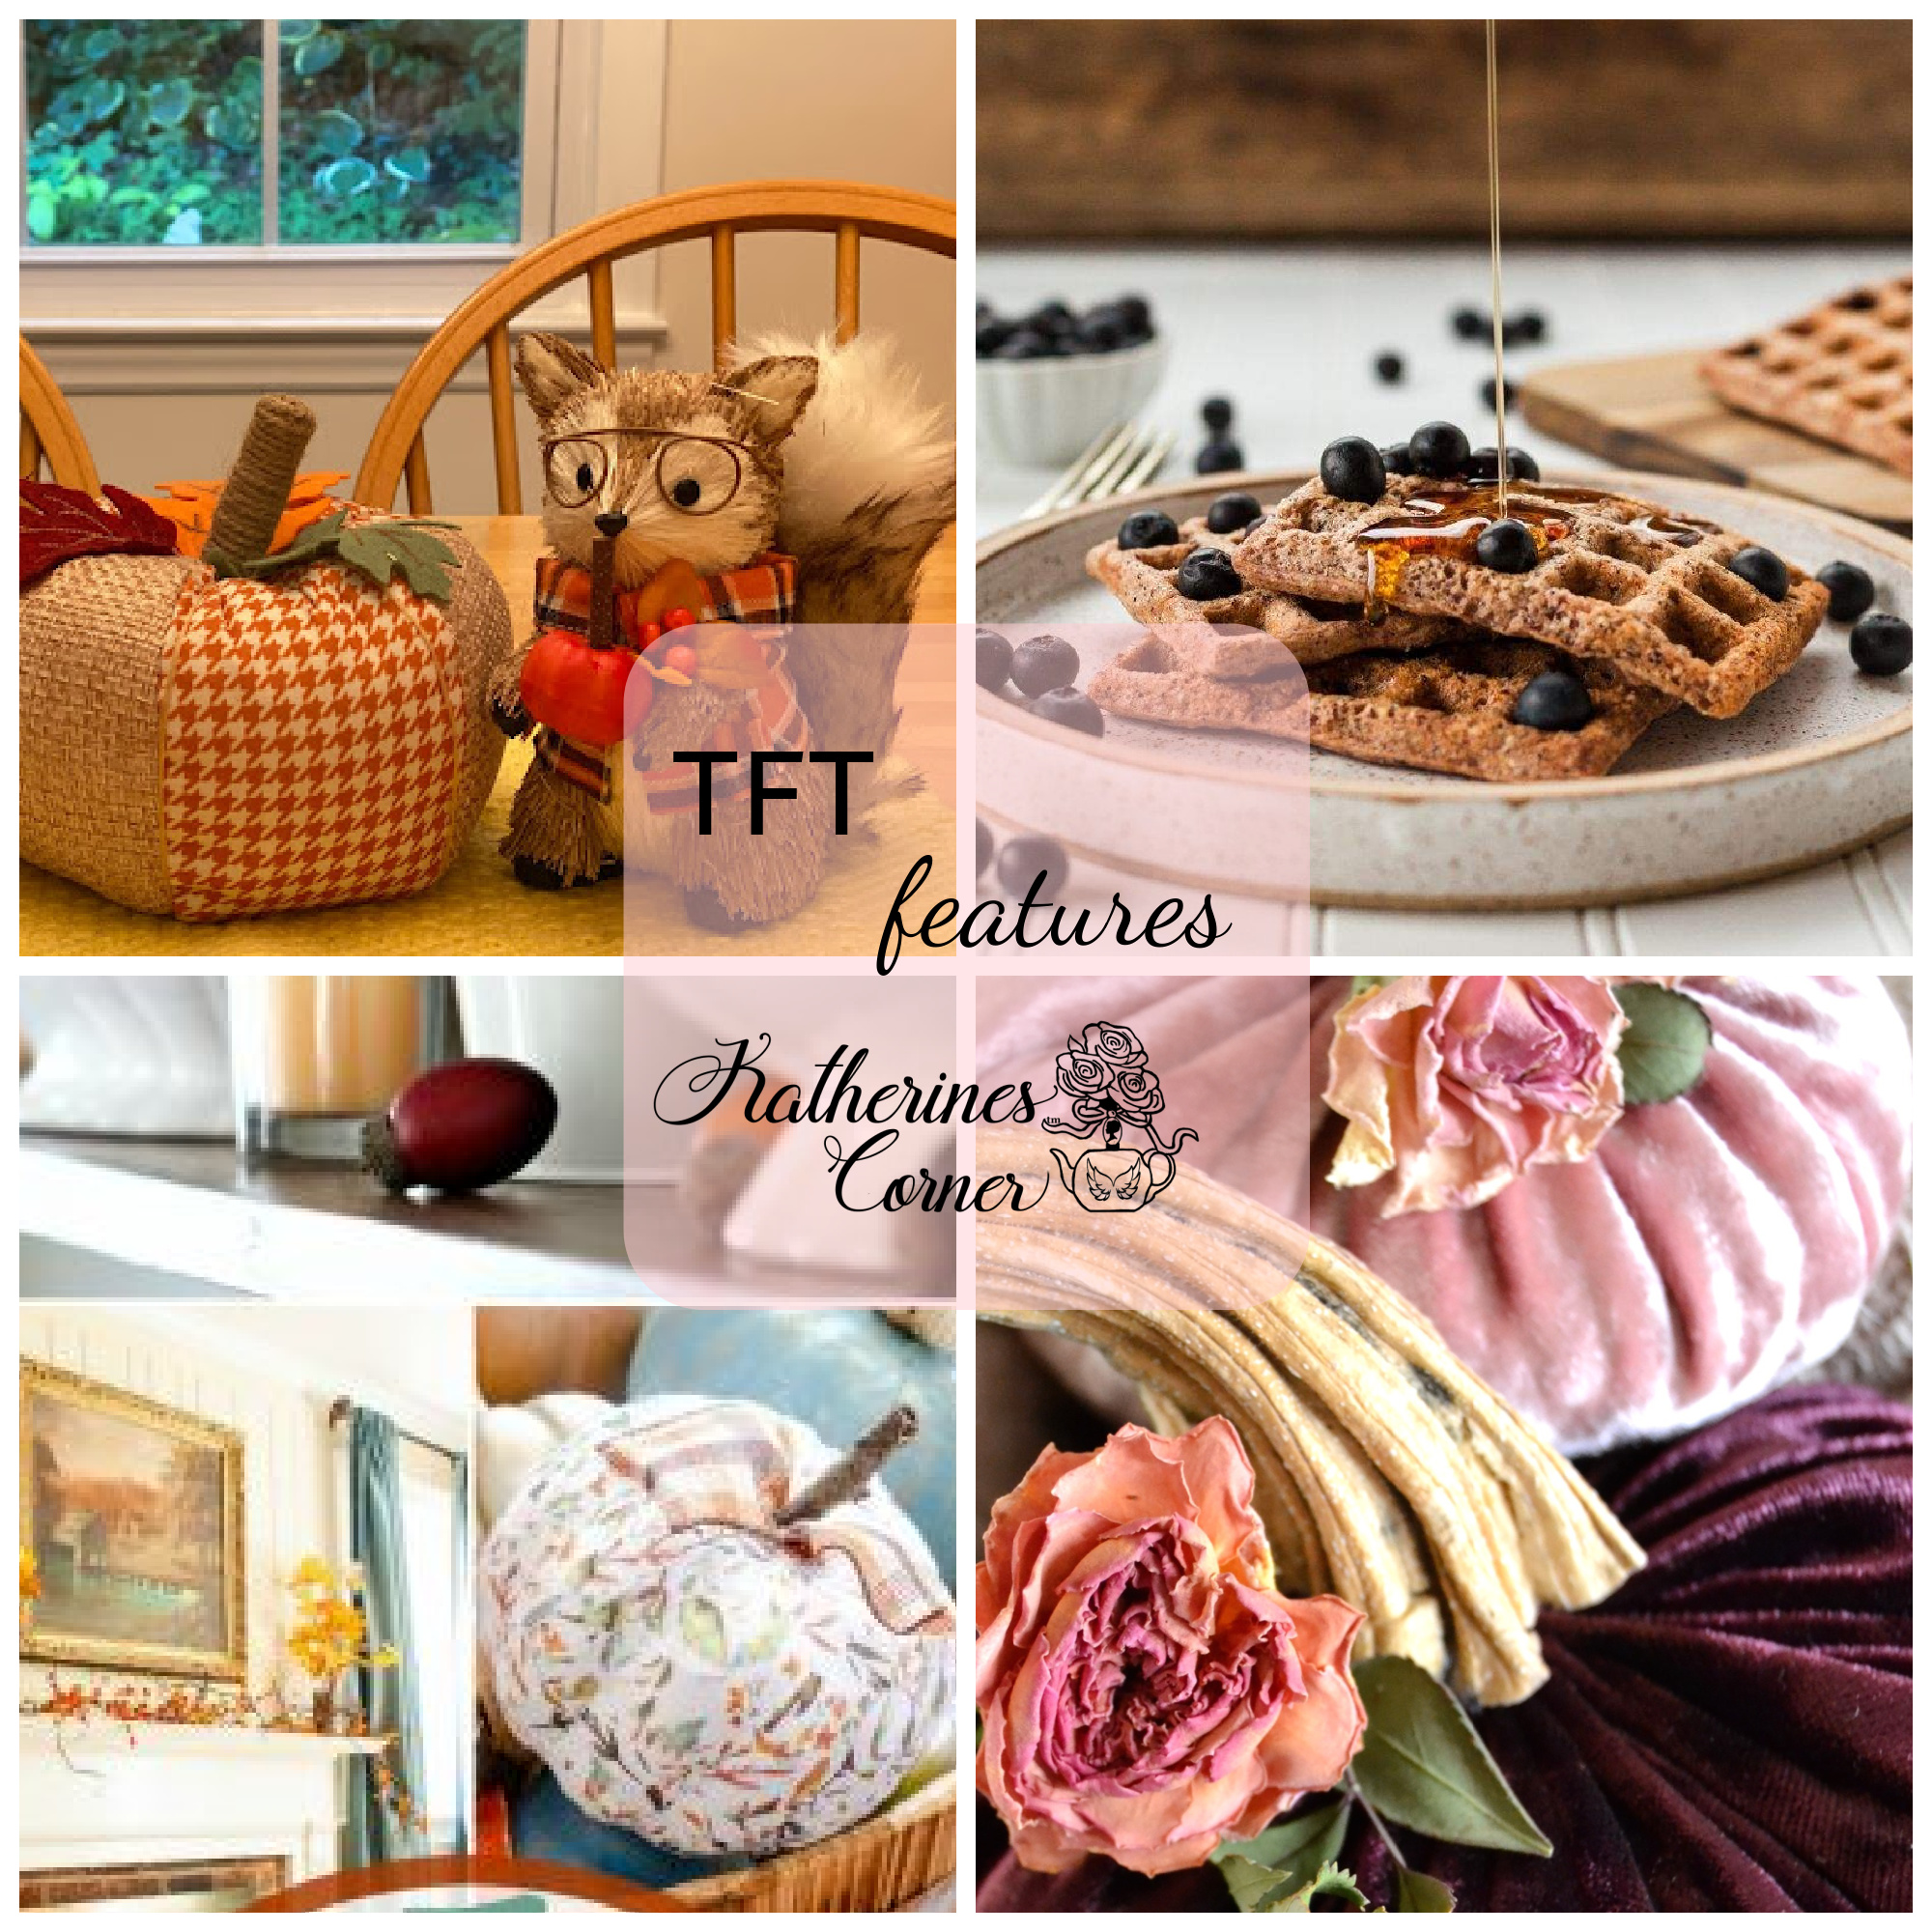 Never to Early for Pumpkins and TFT Blog Hop